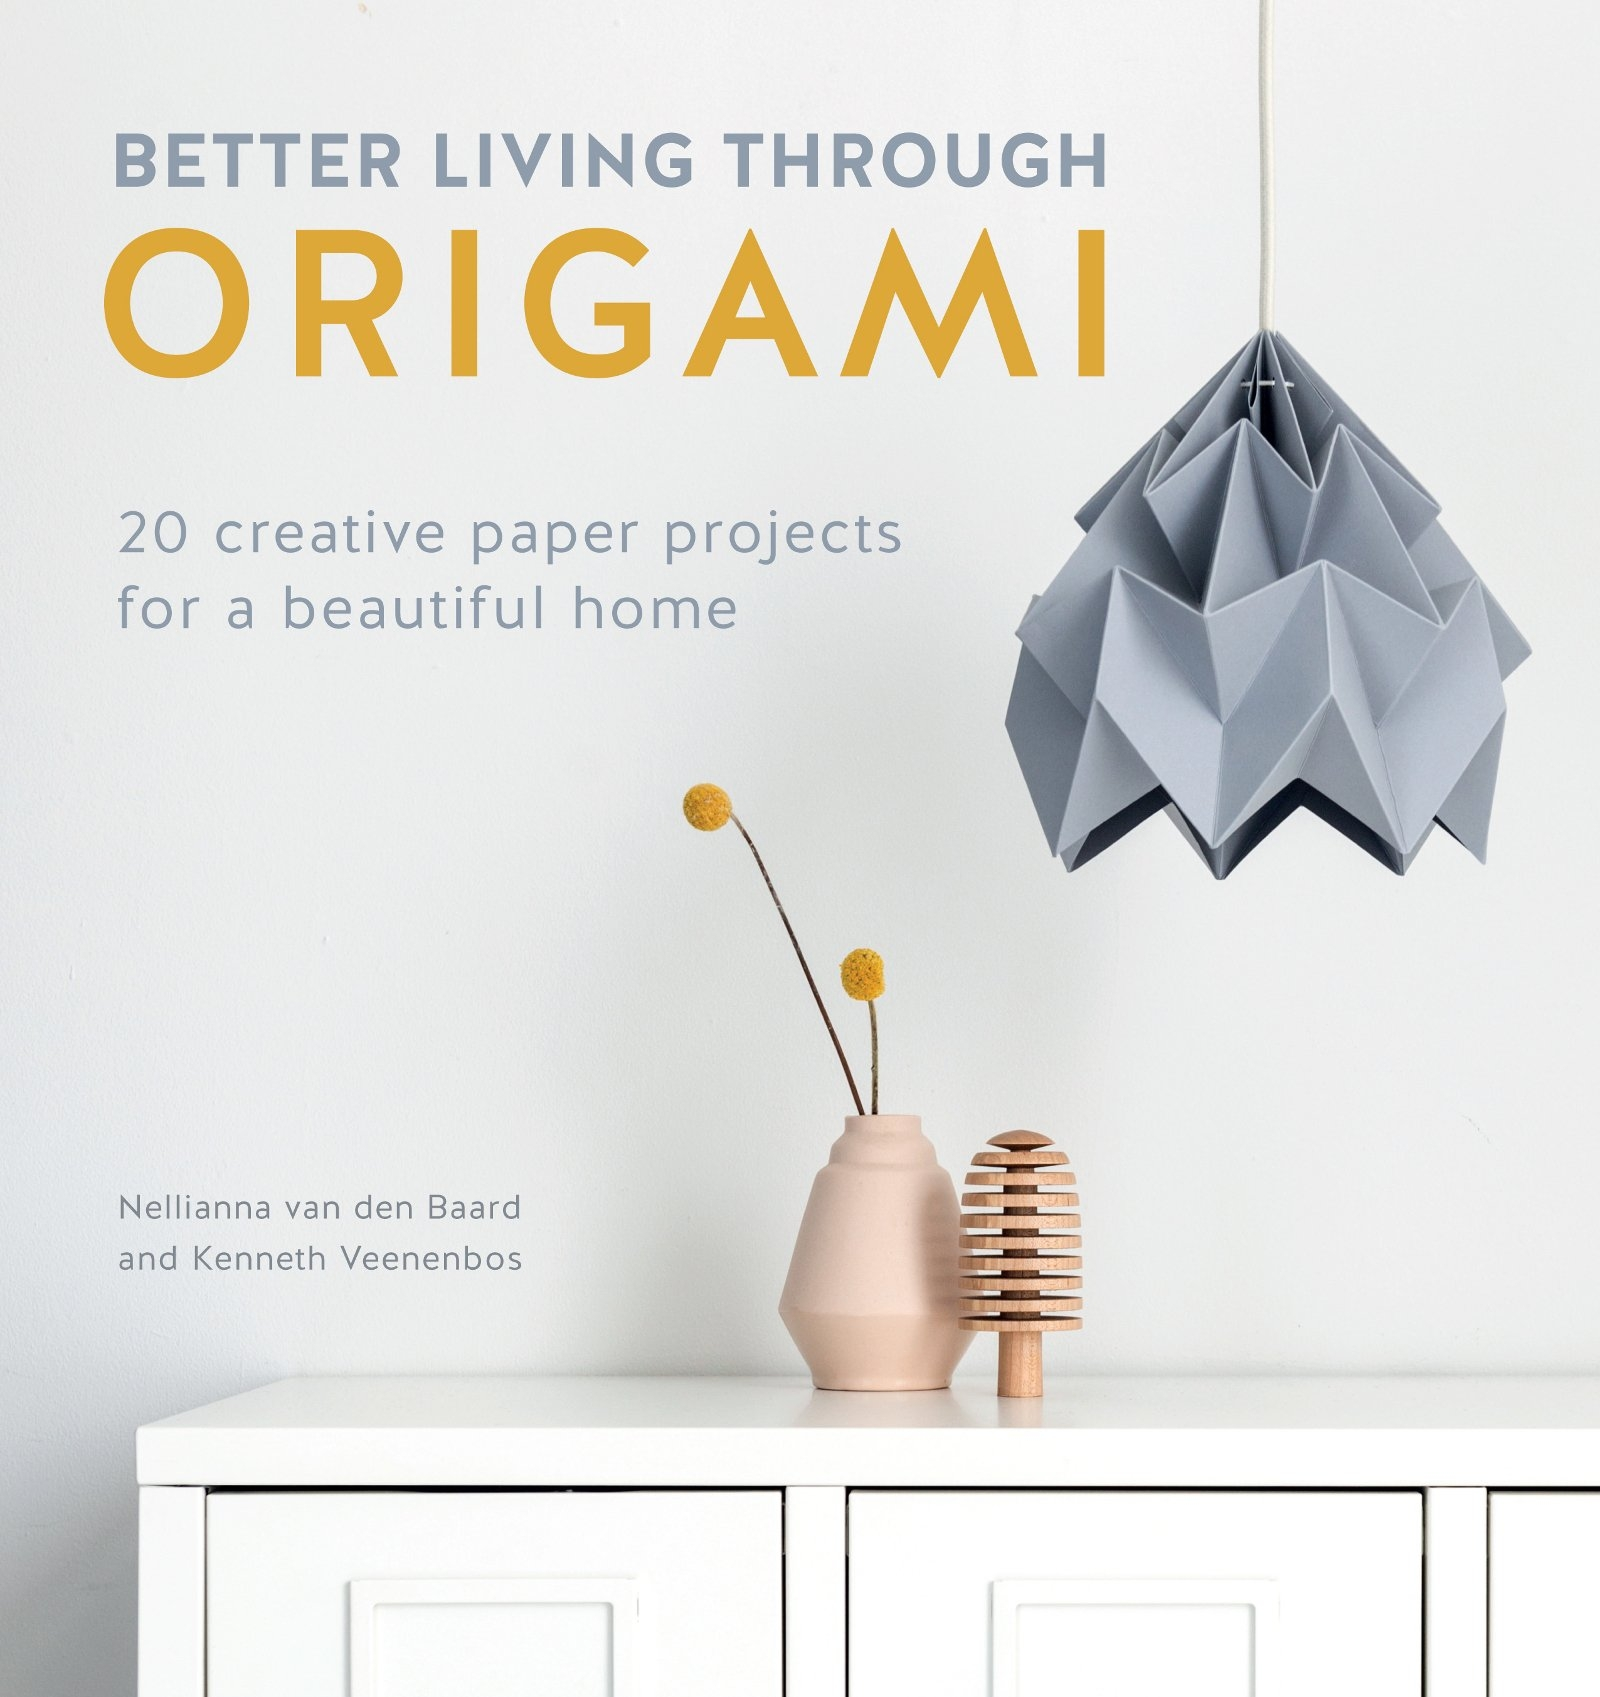 Better Living Through Origami book cover